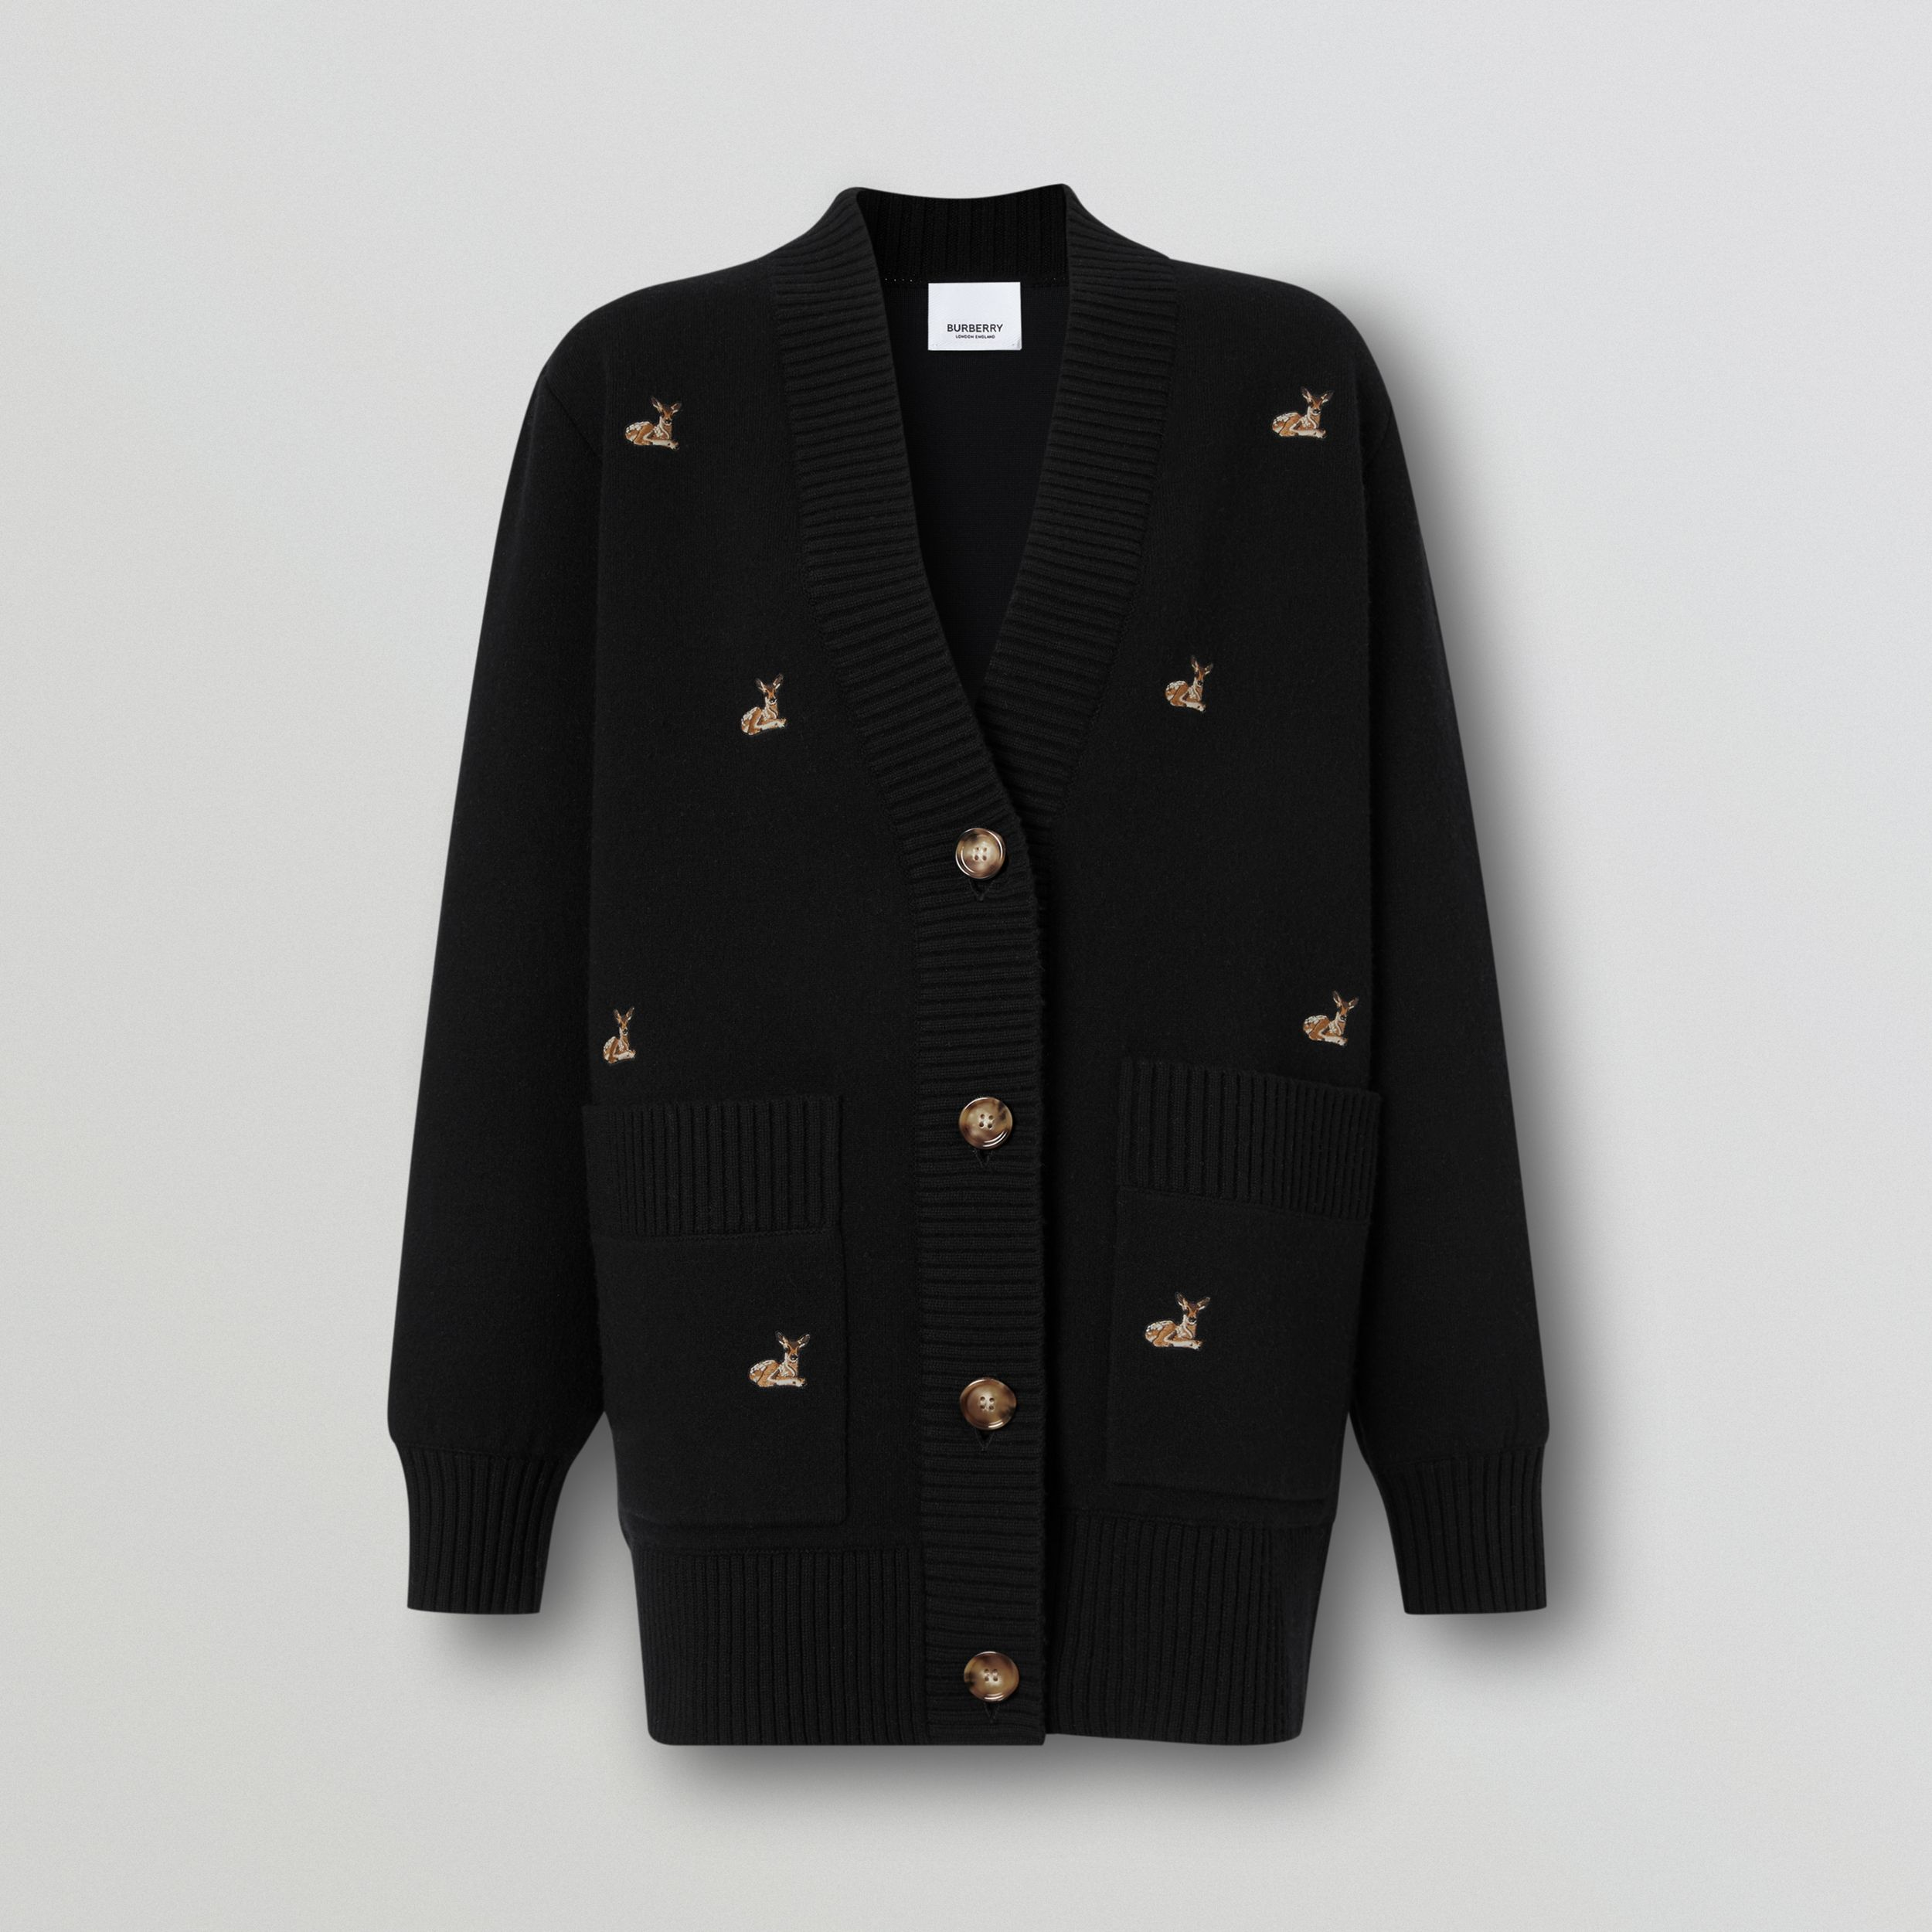 Deer Motif Wool Cashmere Blend Oversized Cardigan in Black - Women | Burberry - 4